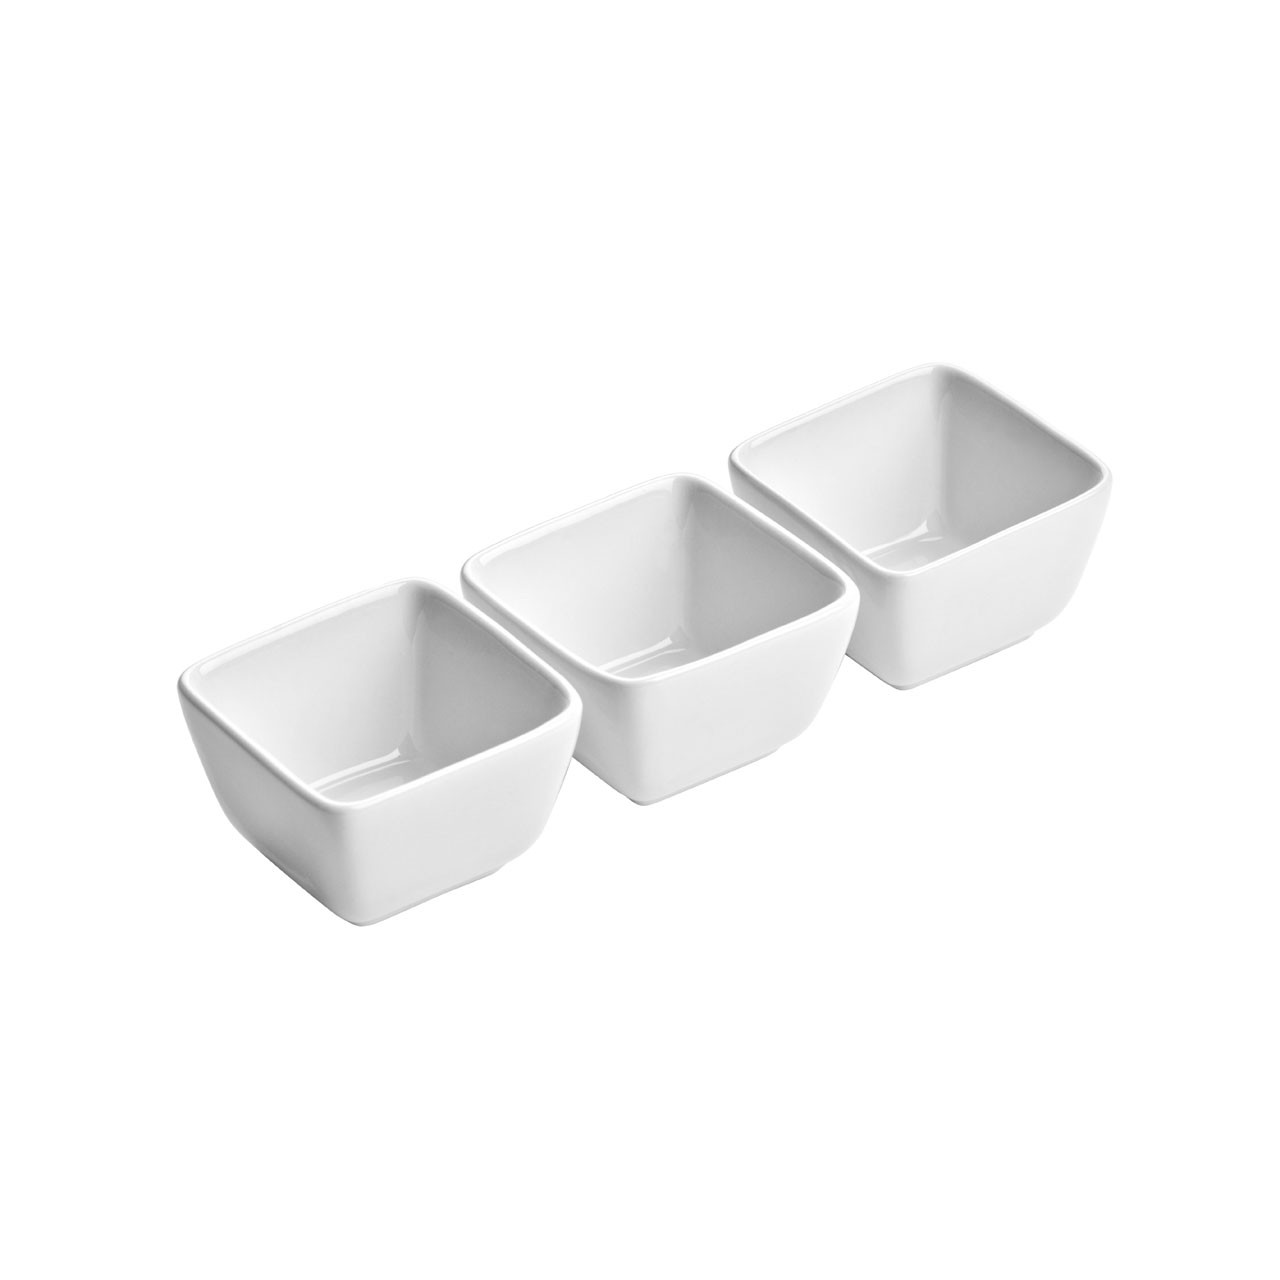 Deep Square Entre Serving Dishes - White Porcelain, Set of 3